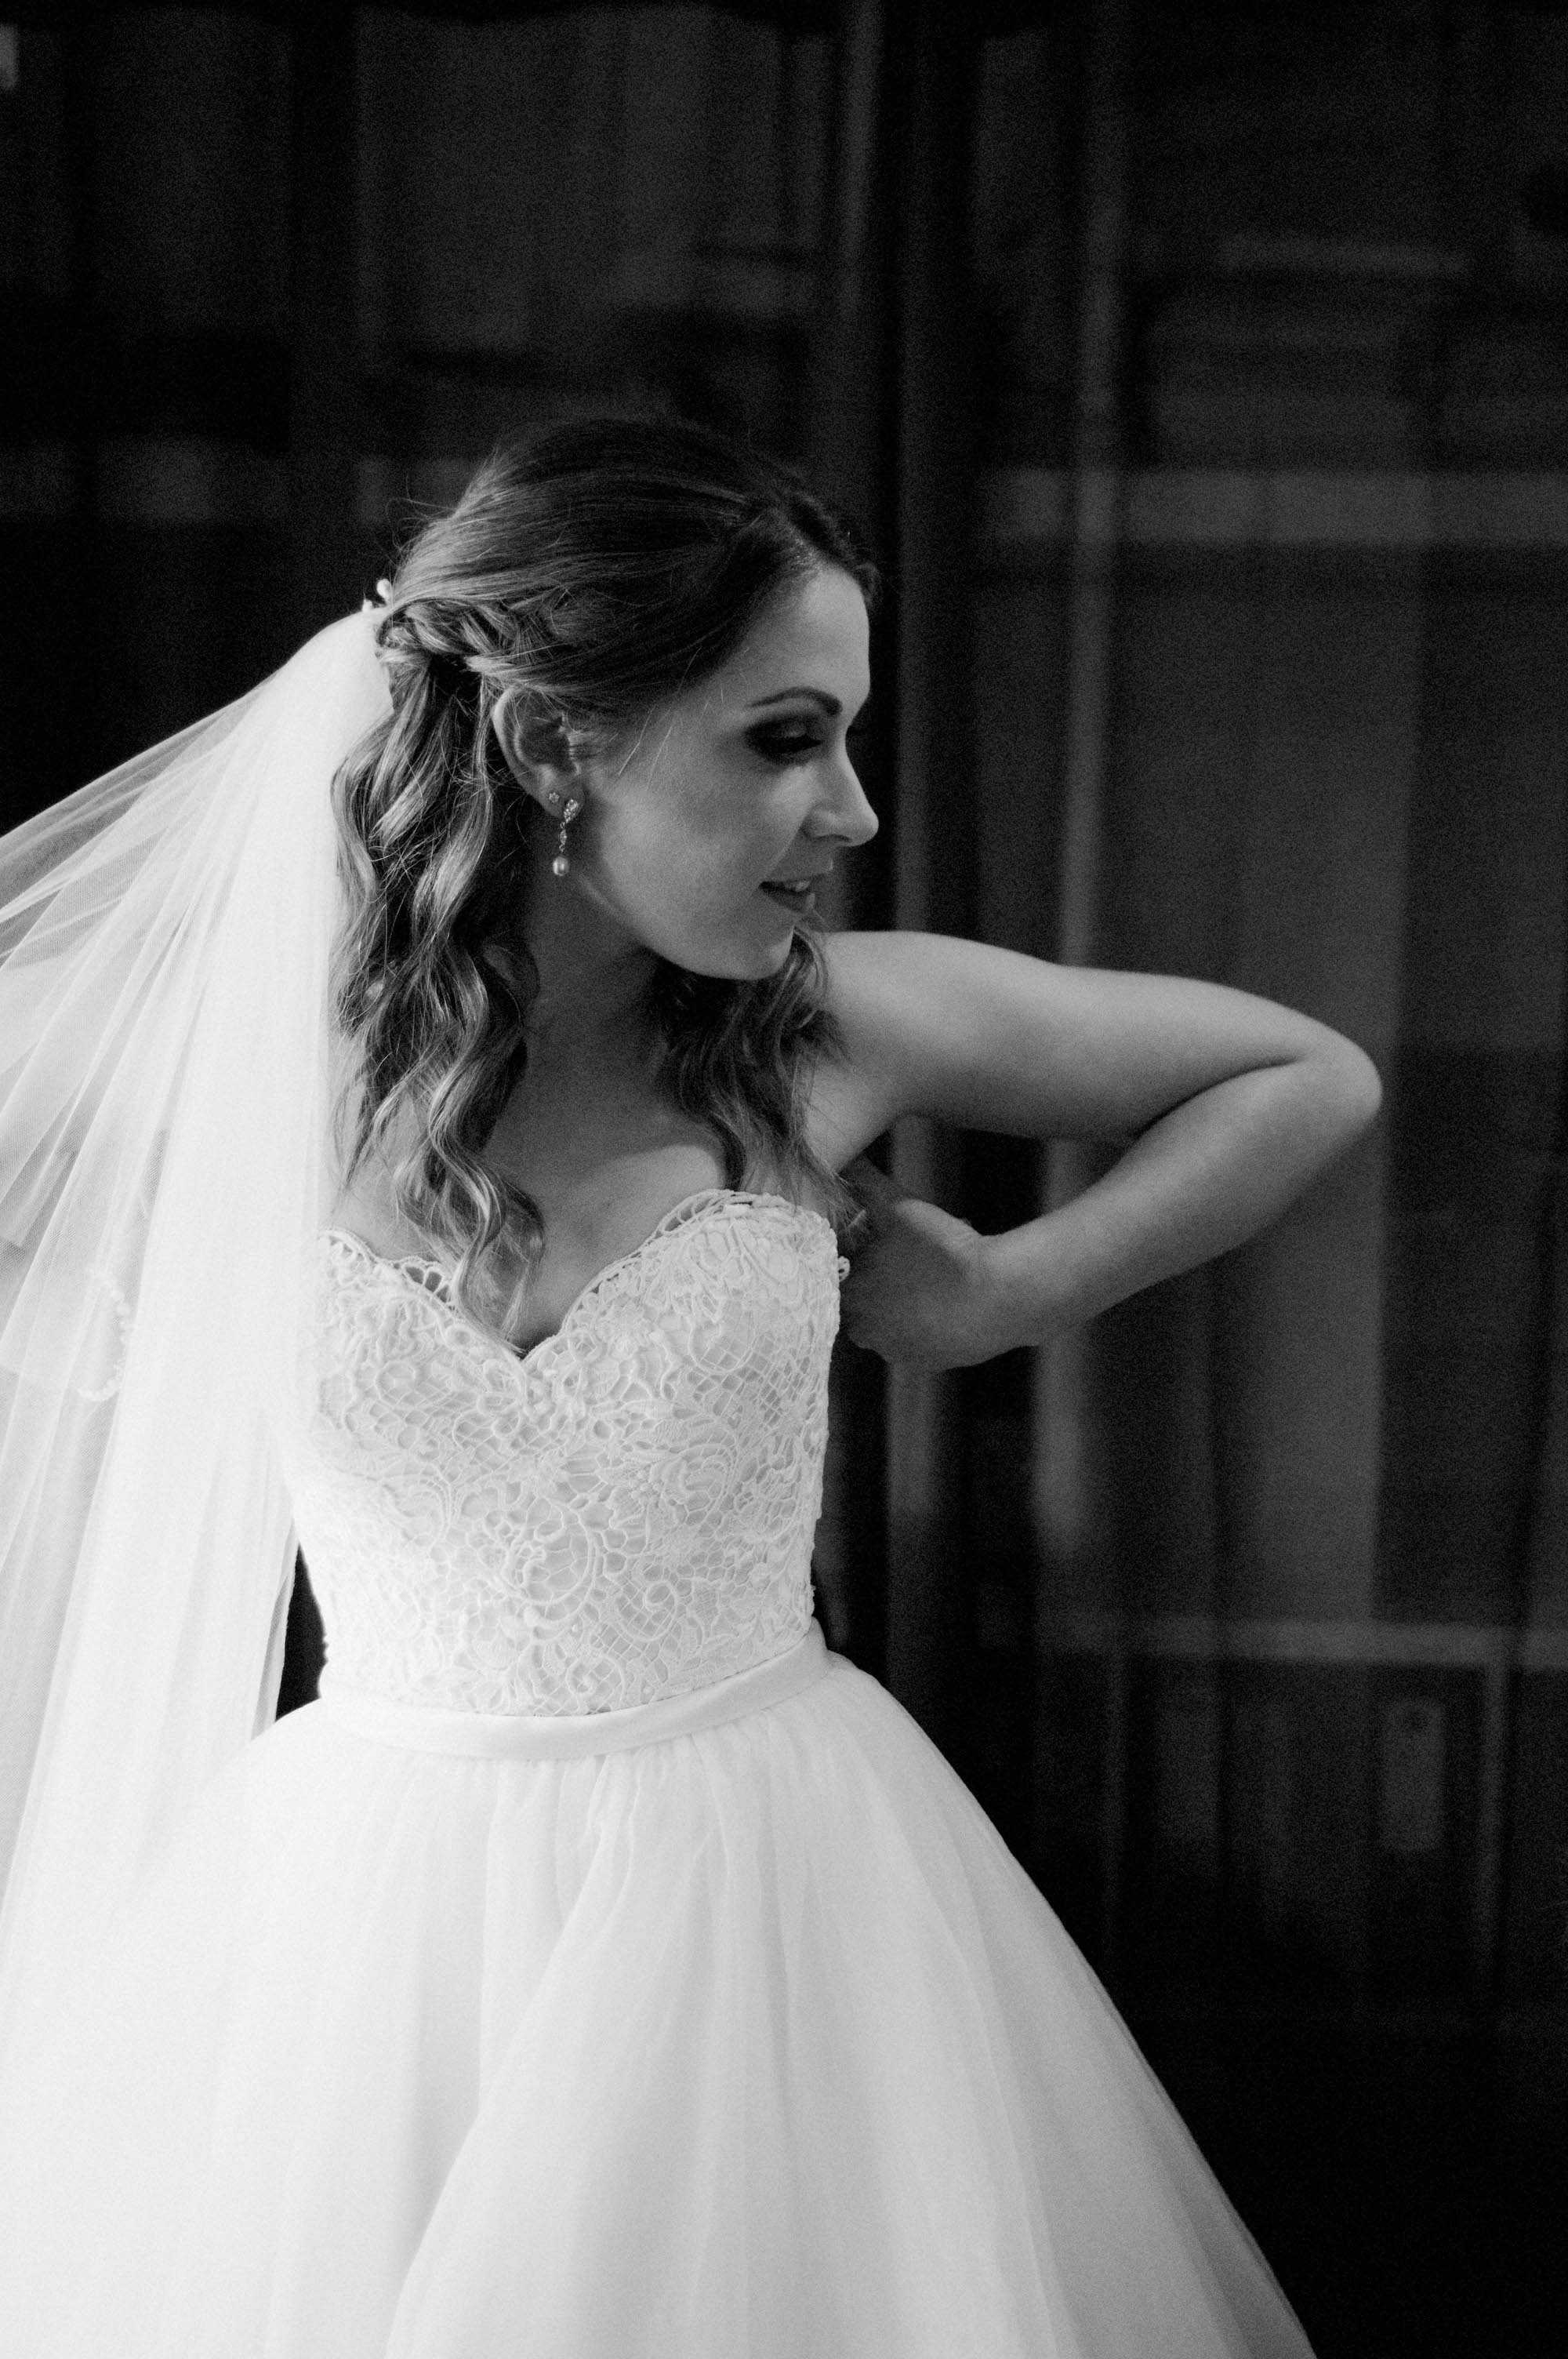 The bride making final adjustments before she leaves for her Quarry Farm ceremony.